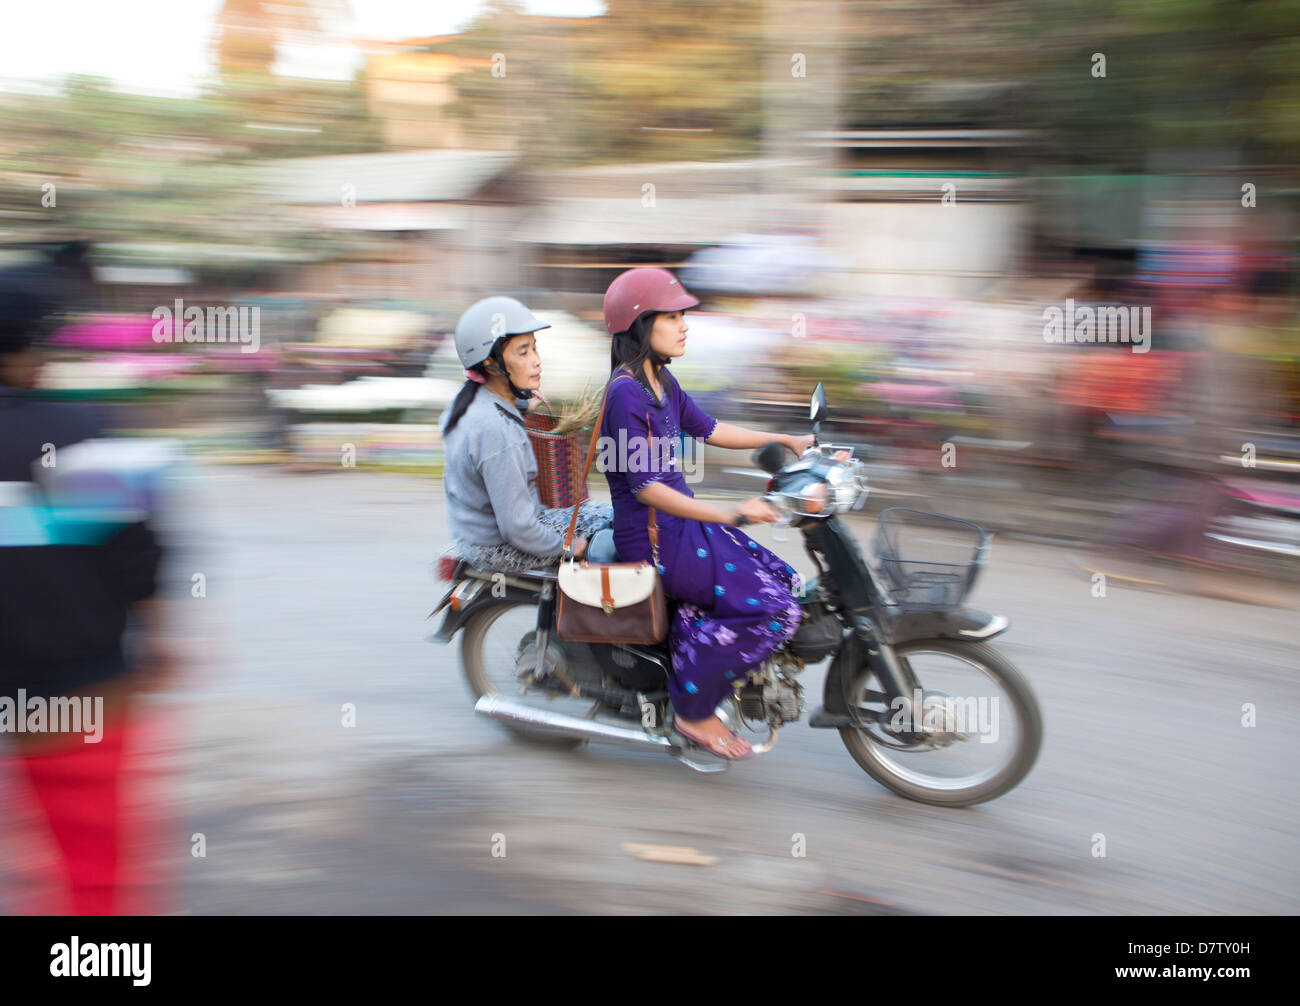 Panned and blurred shot, creating a sense of movement, of two women riding moped through a market, Mandalay, Burma - Stock Image